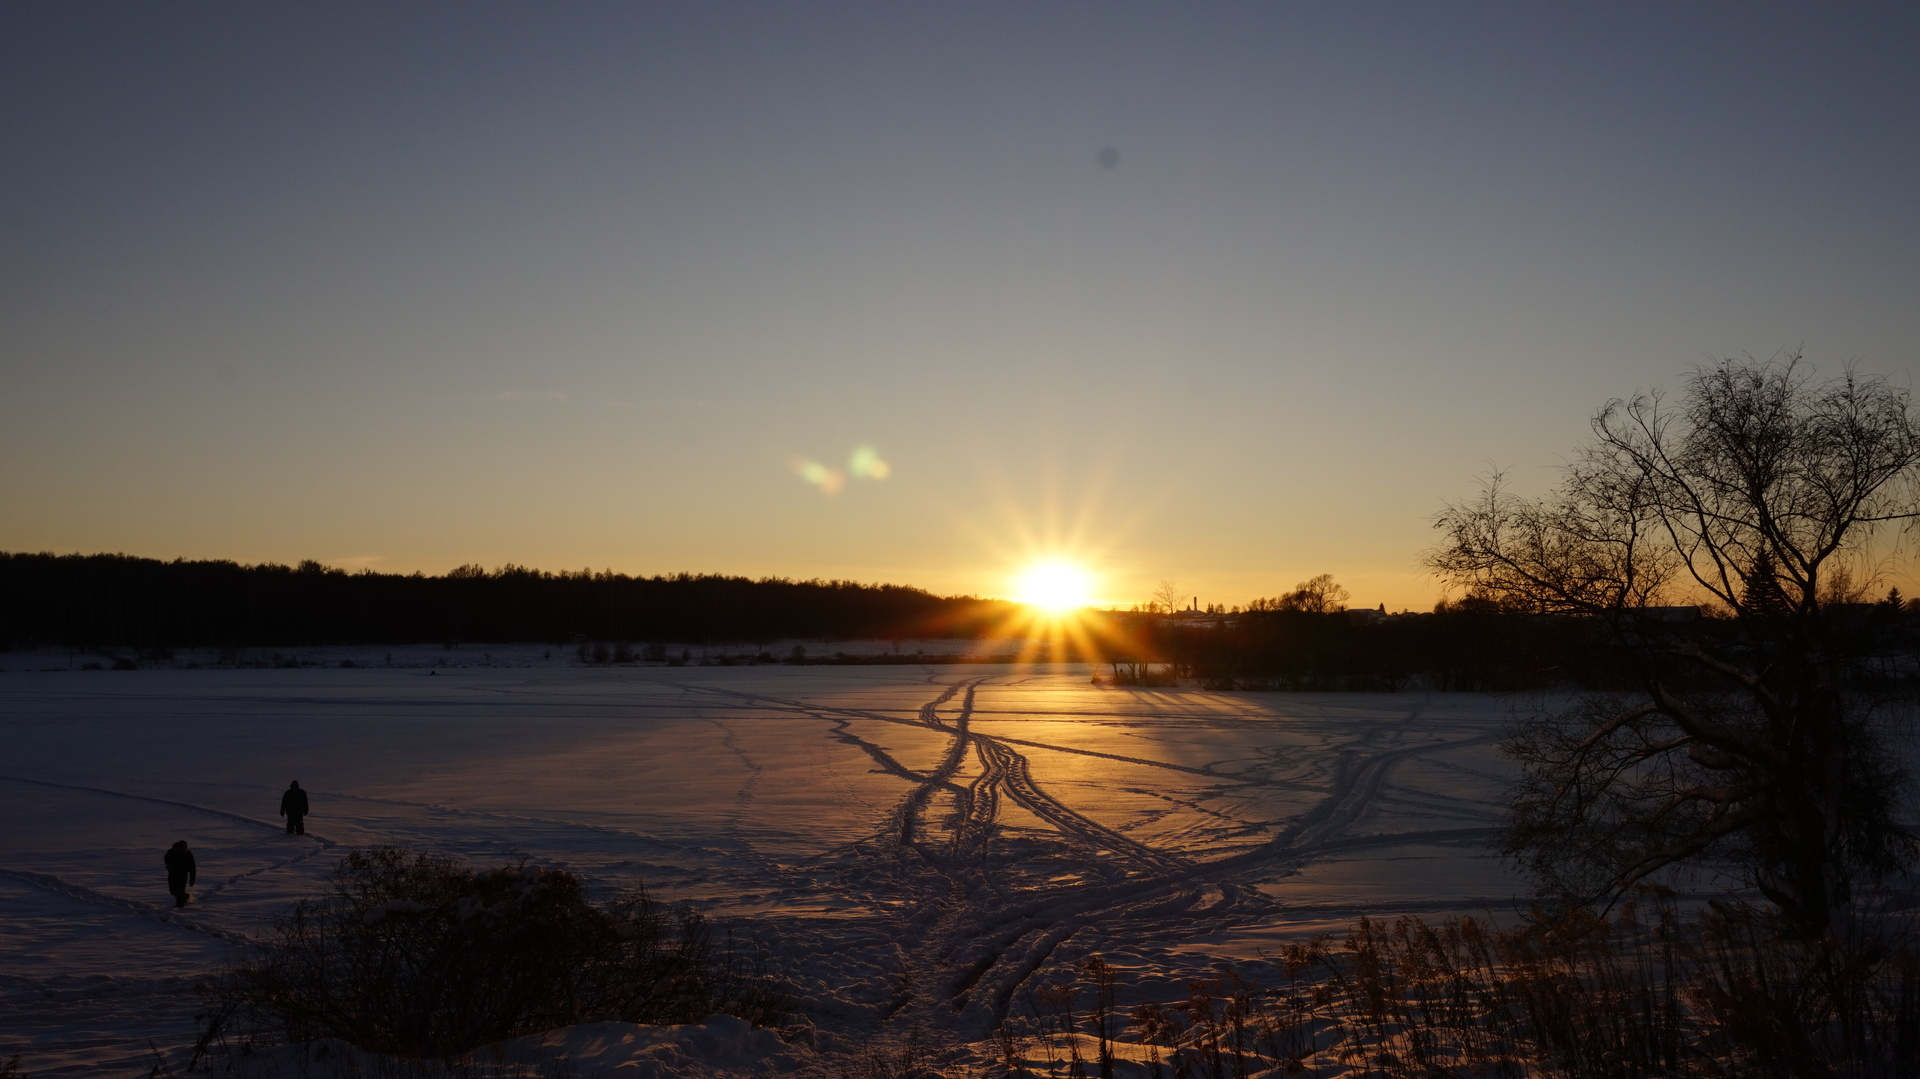 Sunset at snowy landscape | snow, sunset, people, incidental